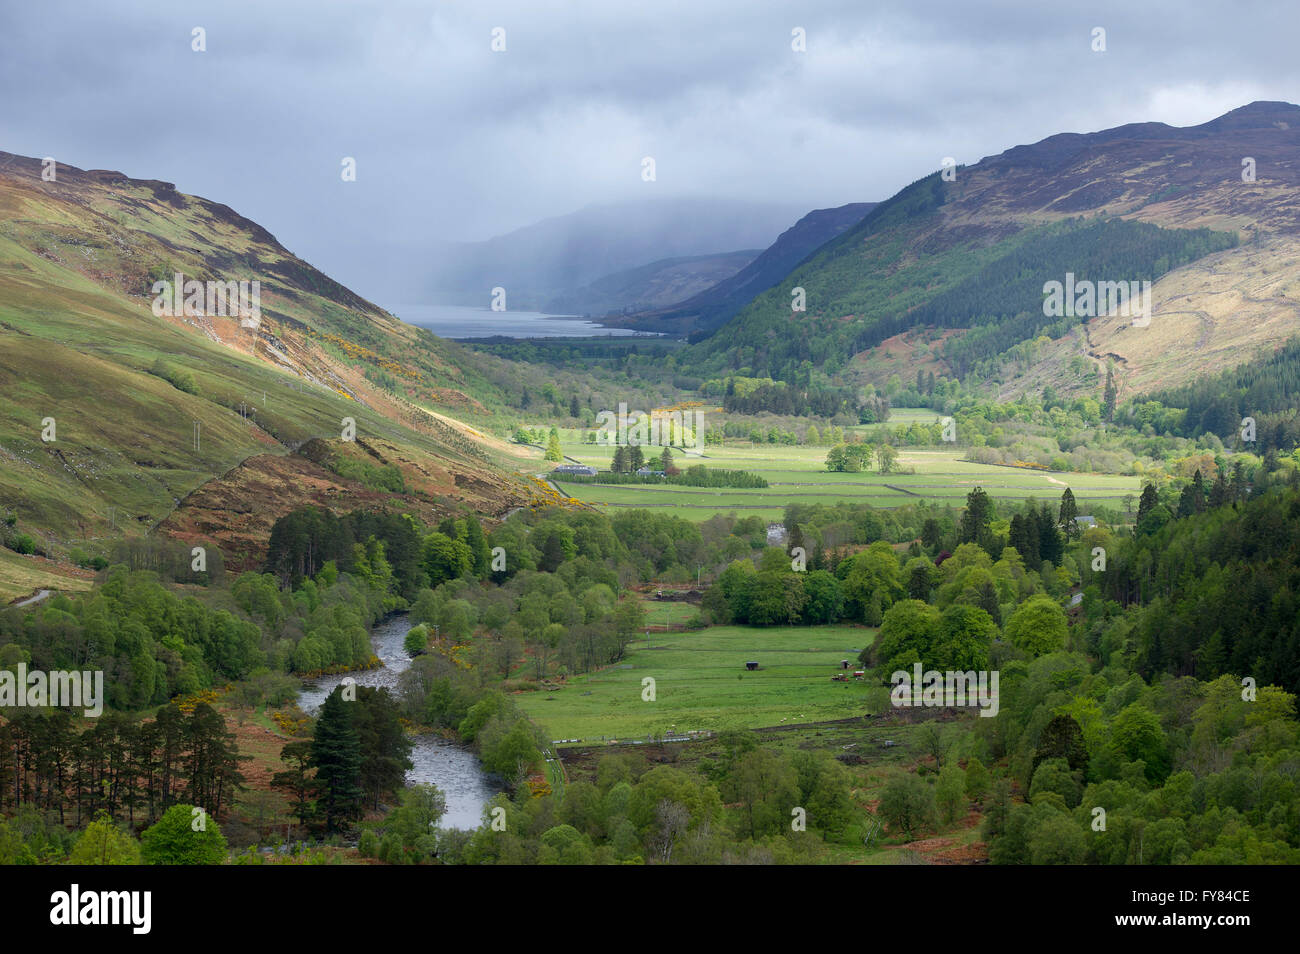 Strath More, west of the River Broom running through Strath More at the head of Loch Broom near the Braemore junction - Stock Image